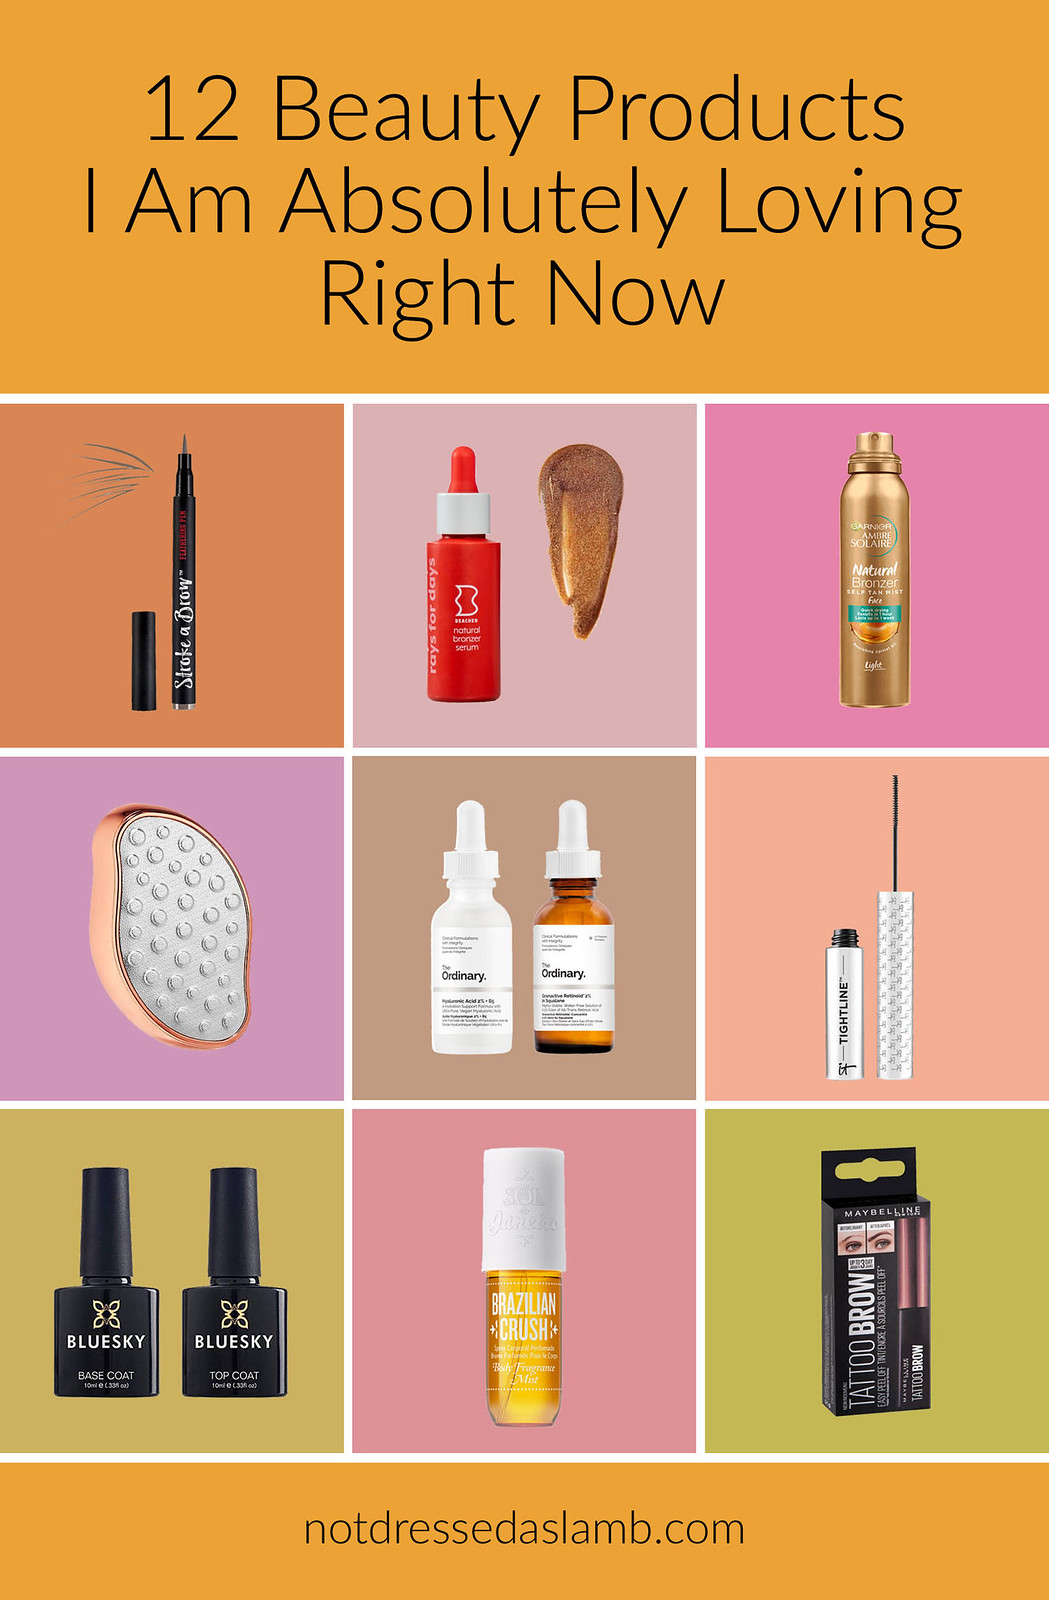 12 Beauty Products I Am Absolutely Loving Right Now   Not Dressed As Lamb